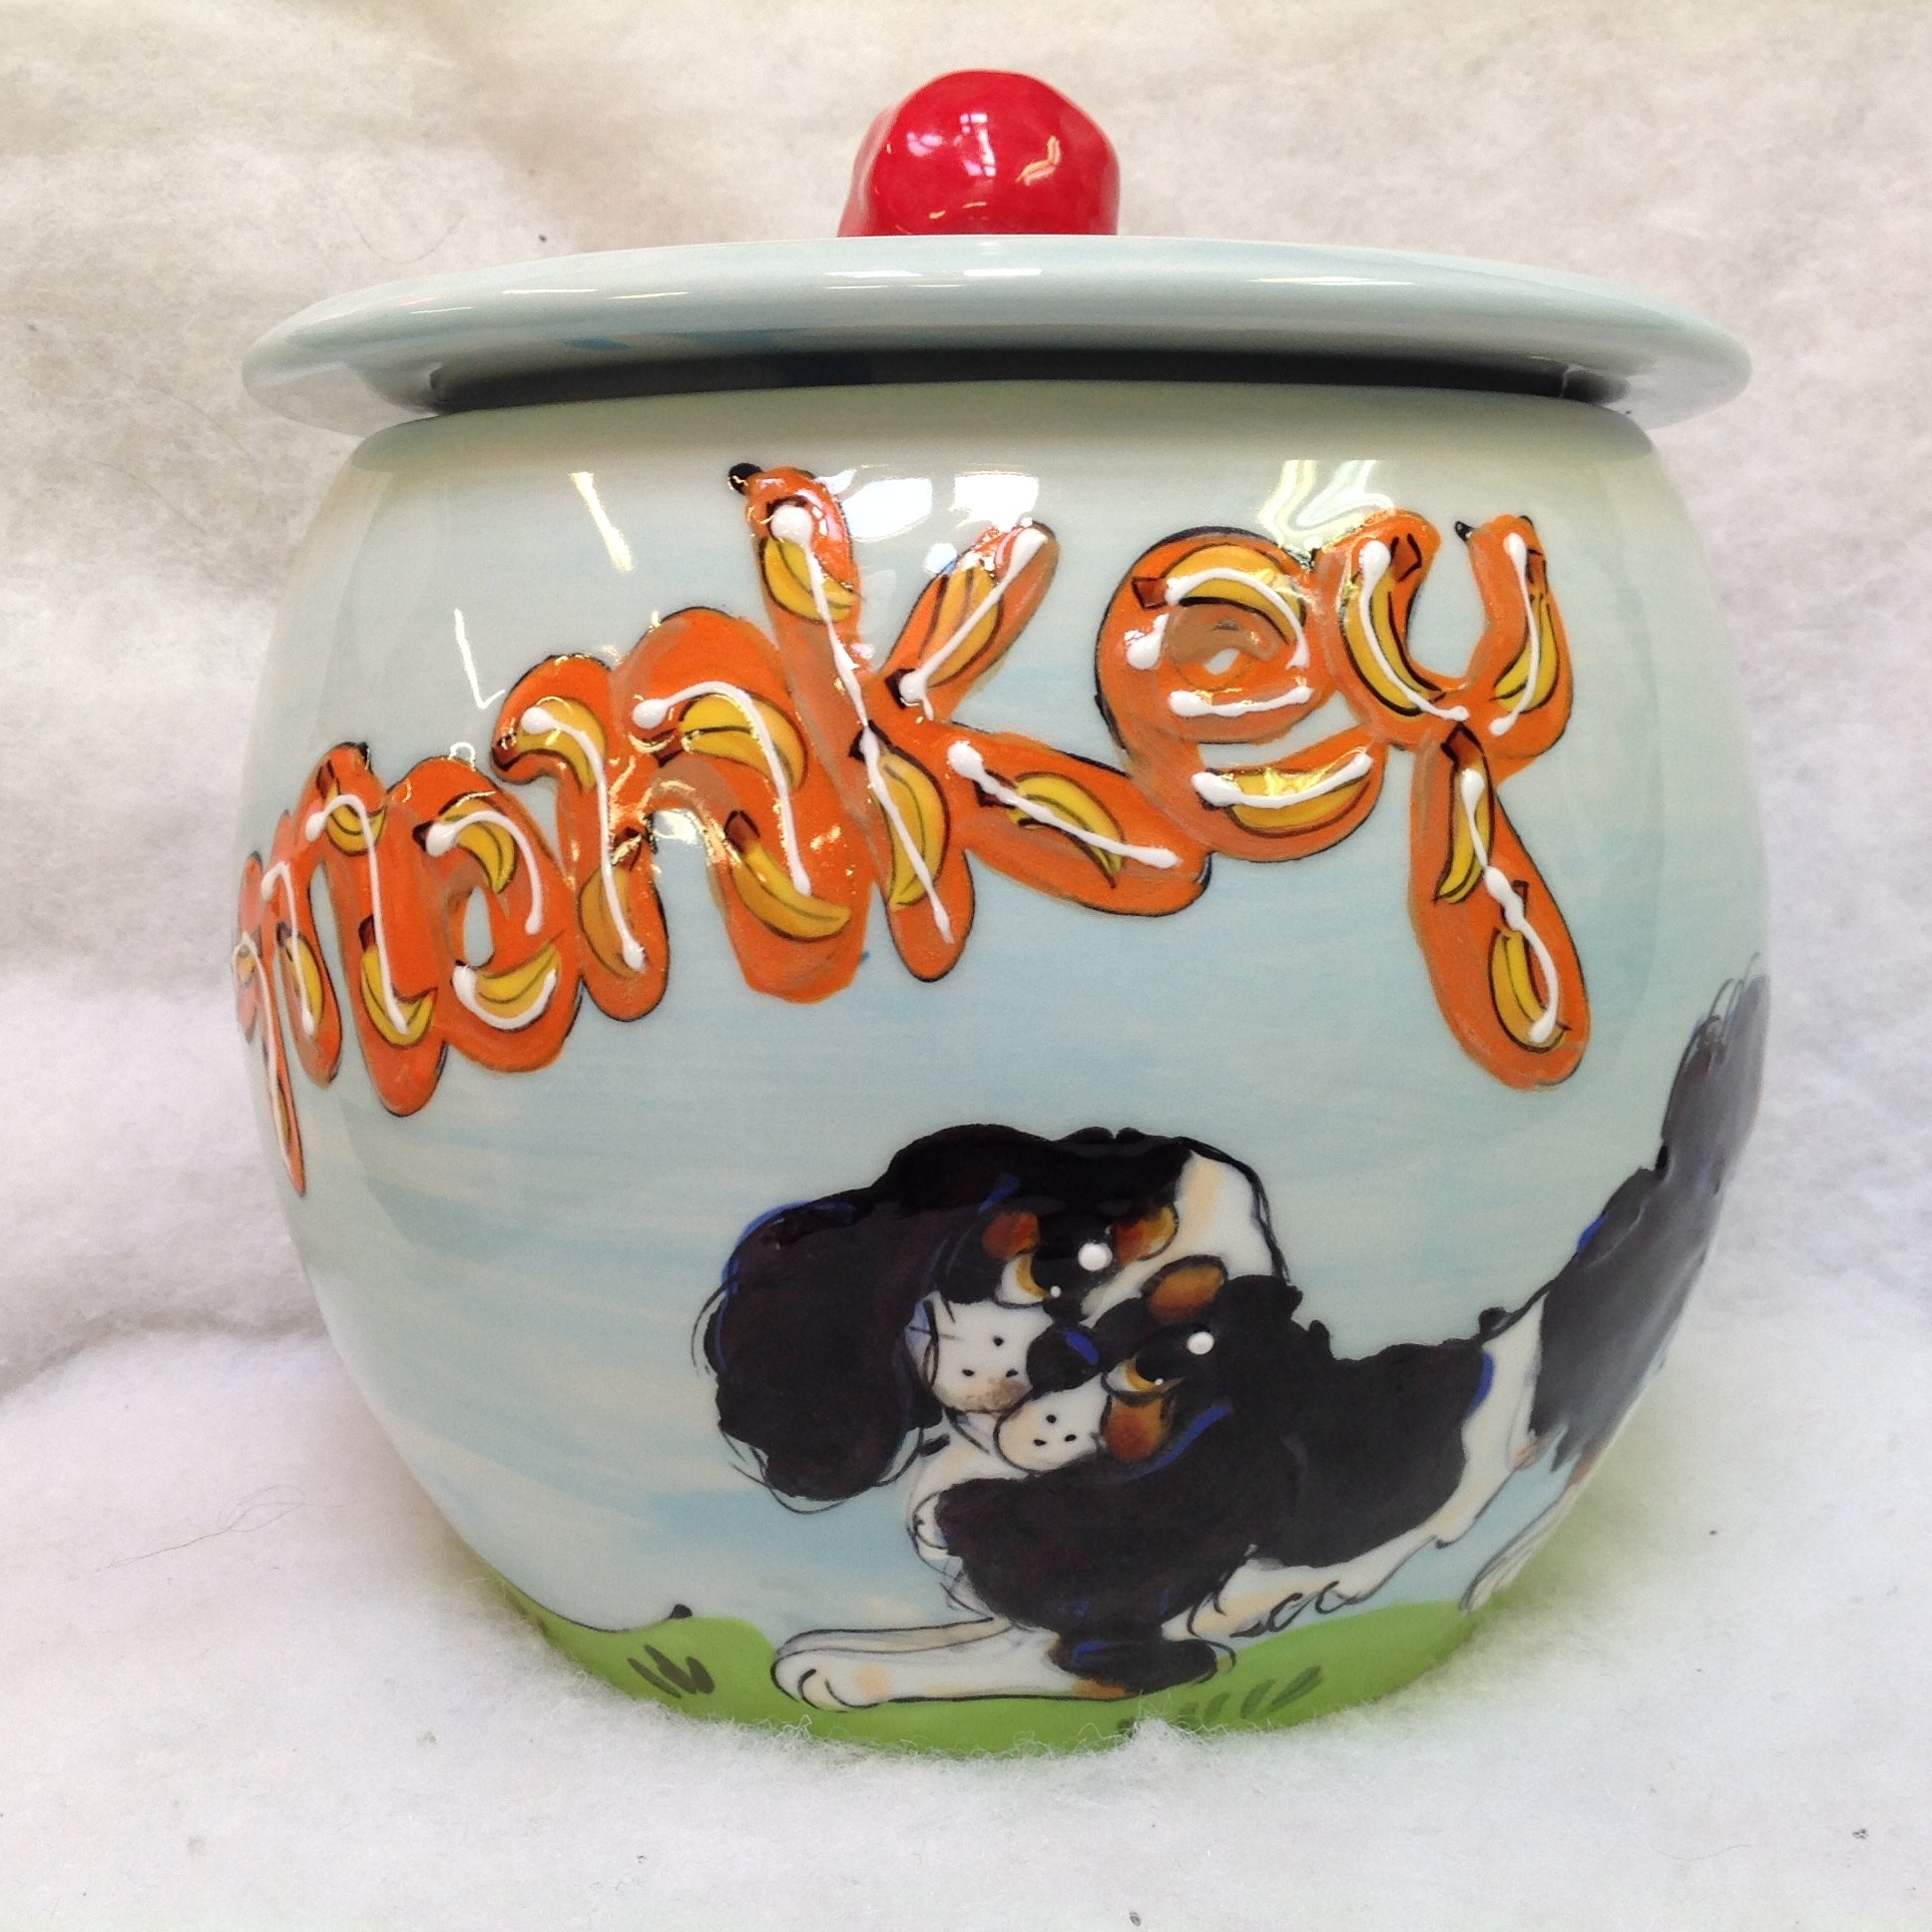 Treat Jar, Personalized at no Charge. Signed by Artist, Debby Carman.